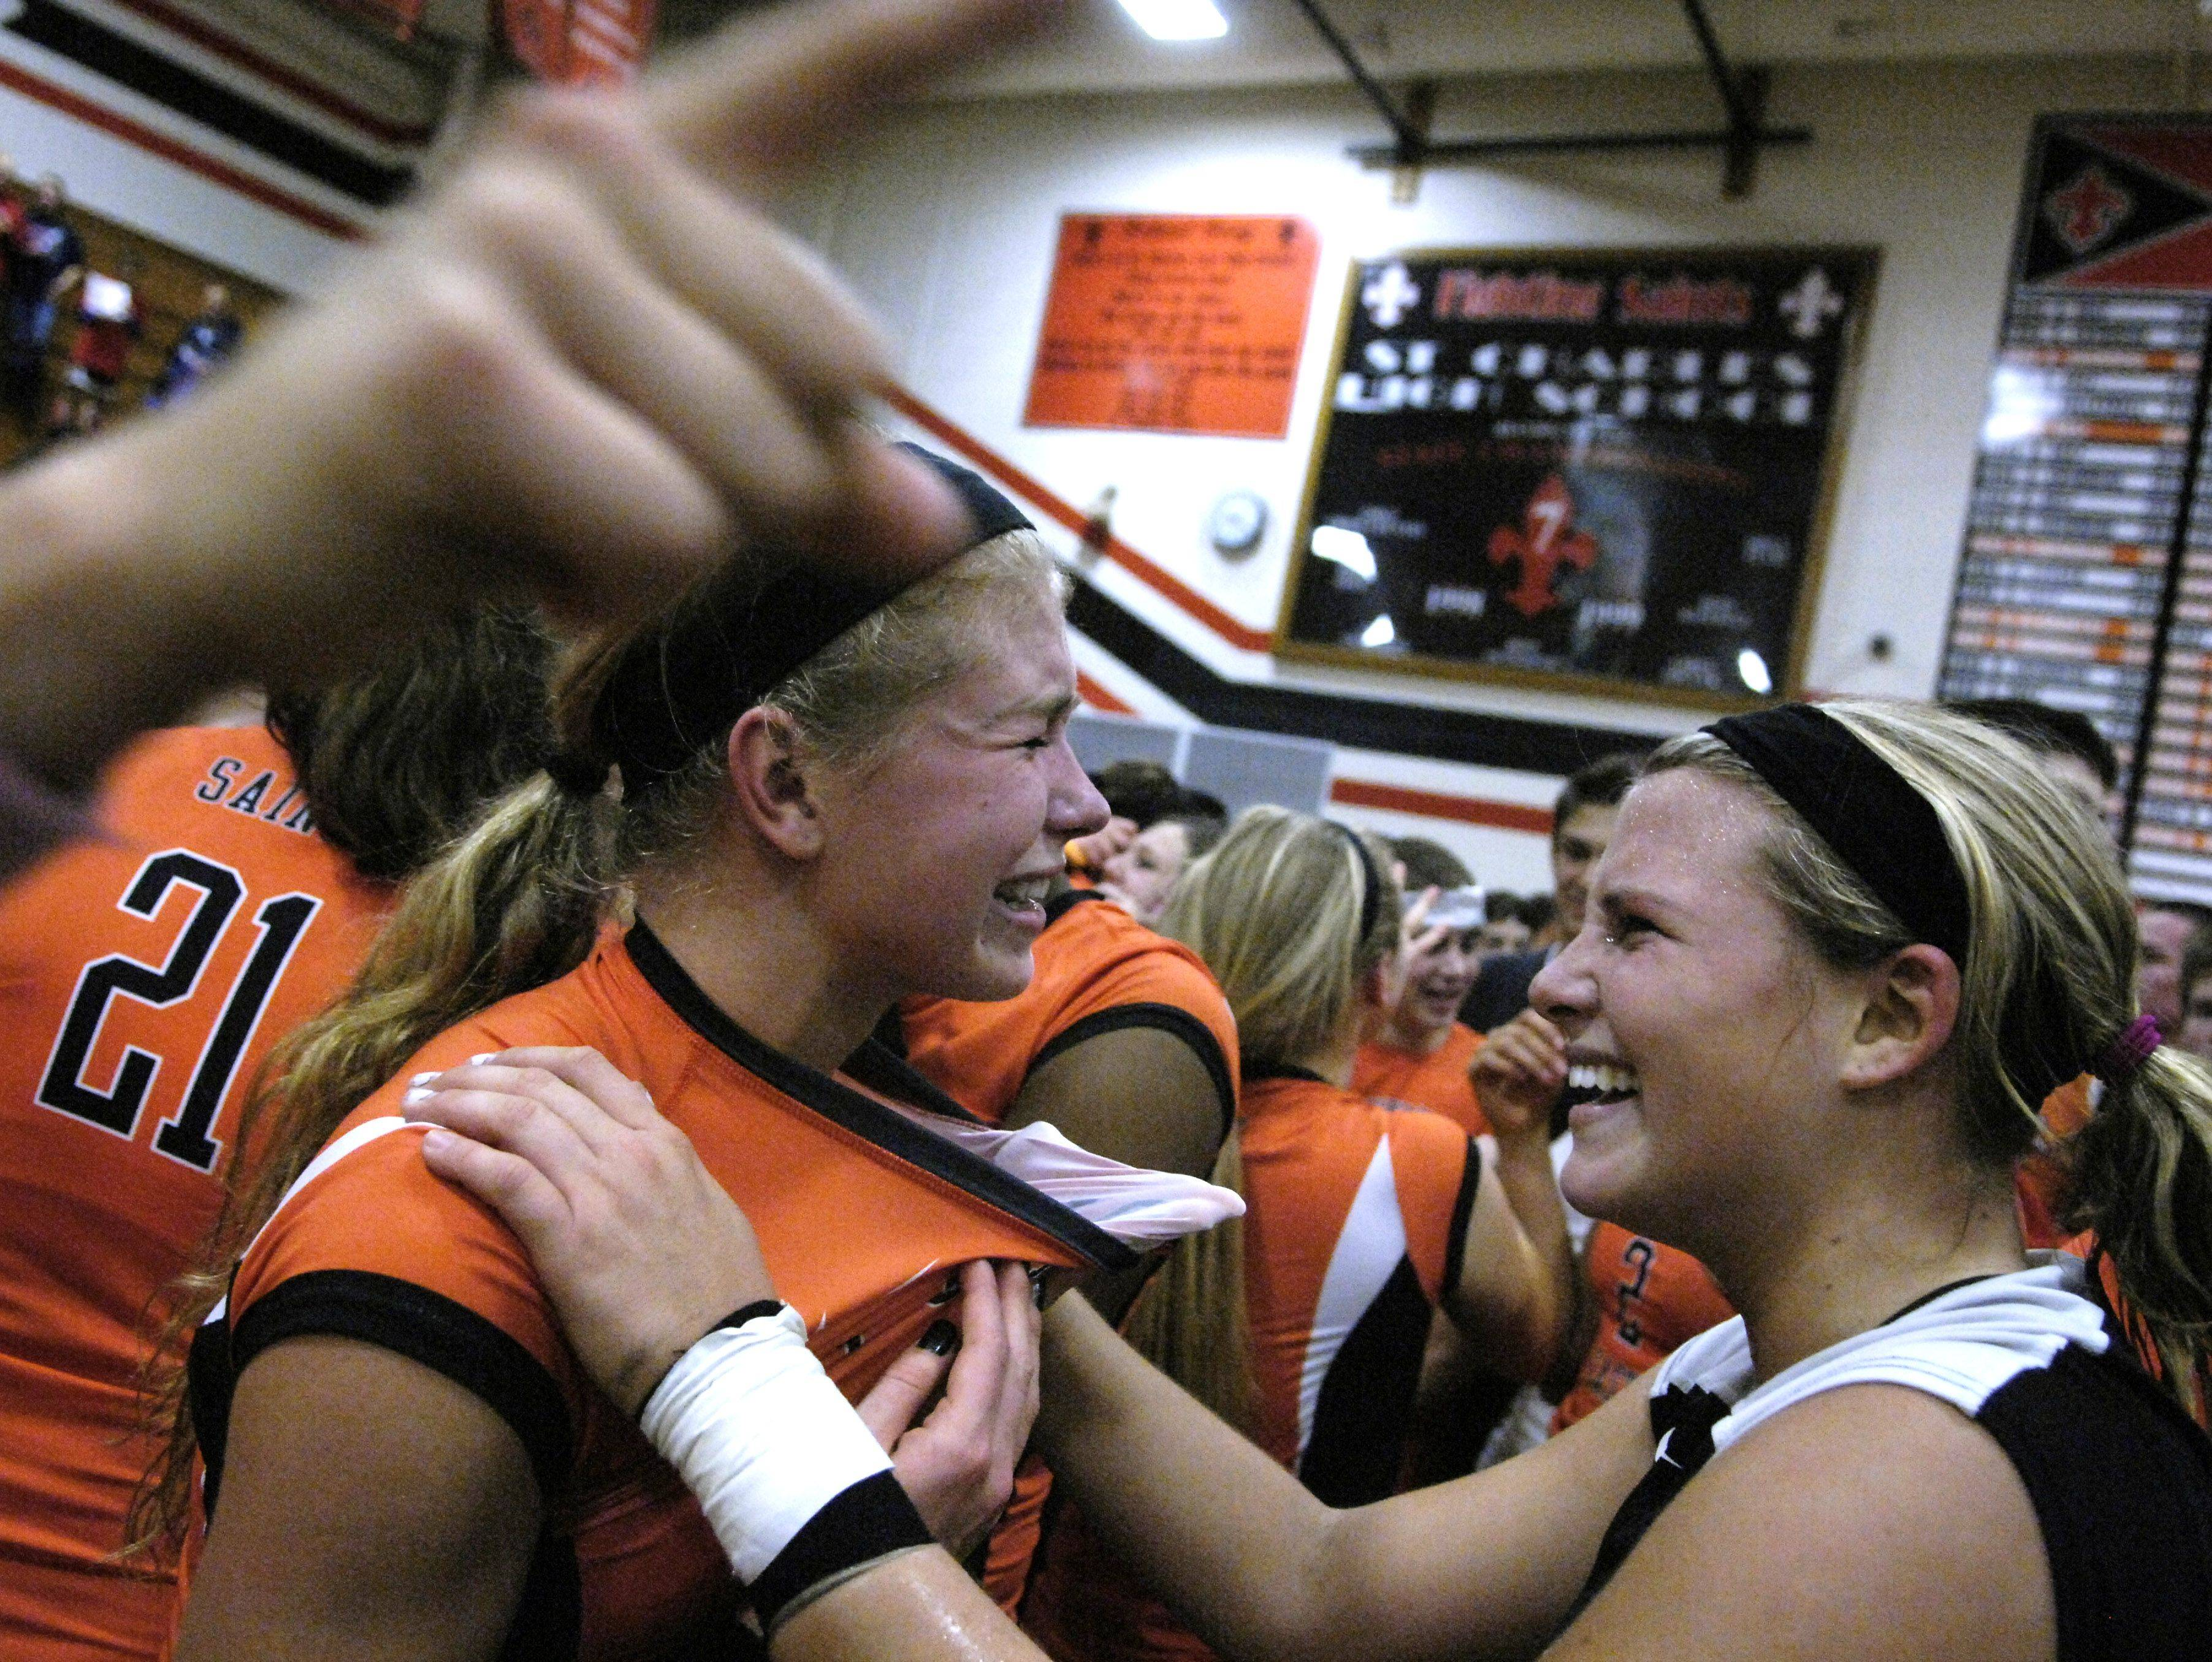 St. Charles East's Maisey Mulvey, right, and Meghan Niski celebrate after winning Thursday's sectional final in St. Charles.